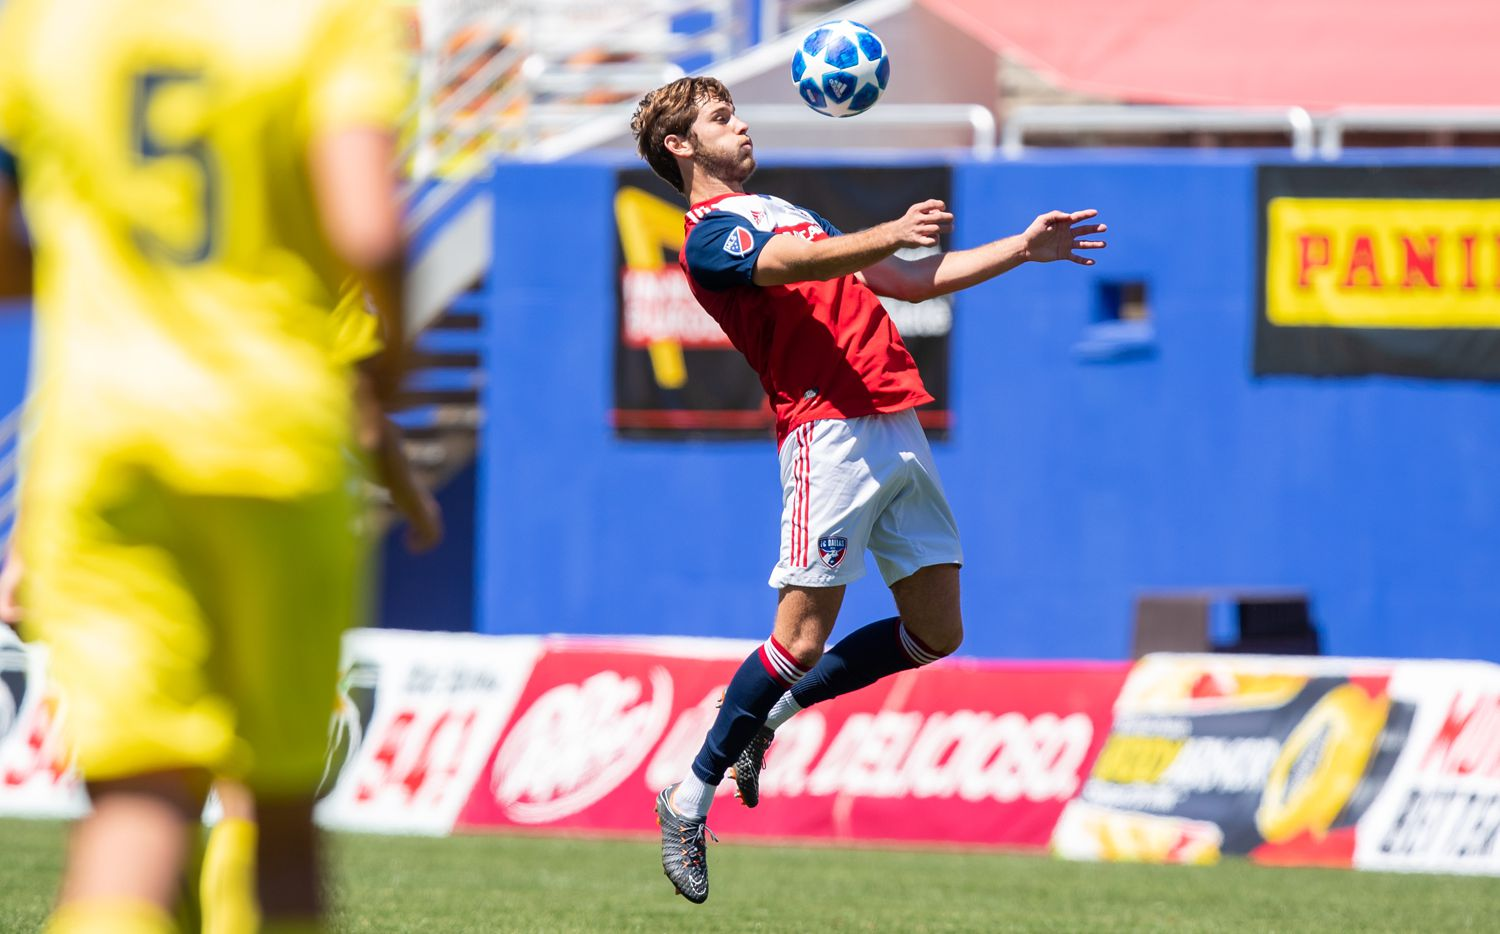 DALLAS, TX - APRIL 14: Tanner Tessmann of FC Dallas chests down the ball during the Dallas Cup Super Group soccer game between FC Dallas (USA) and Villareal (Spain) on April 14, 2019 at The Cotton Bowl in Dallas, Texas.  (Photo by Matthew Visinsky)